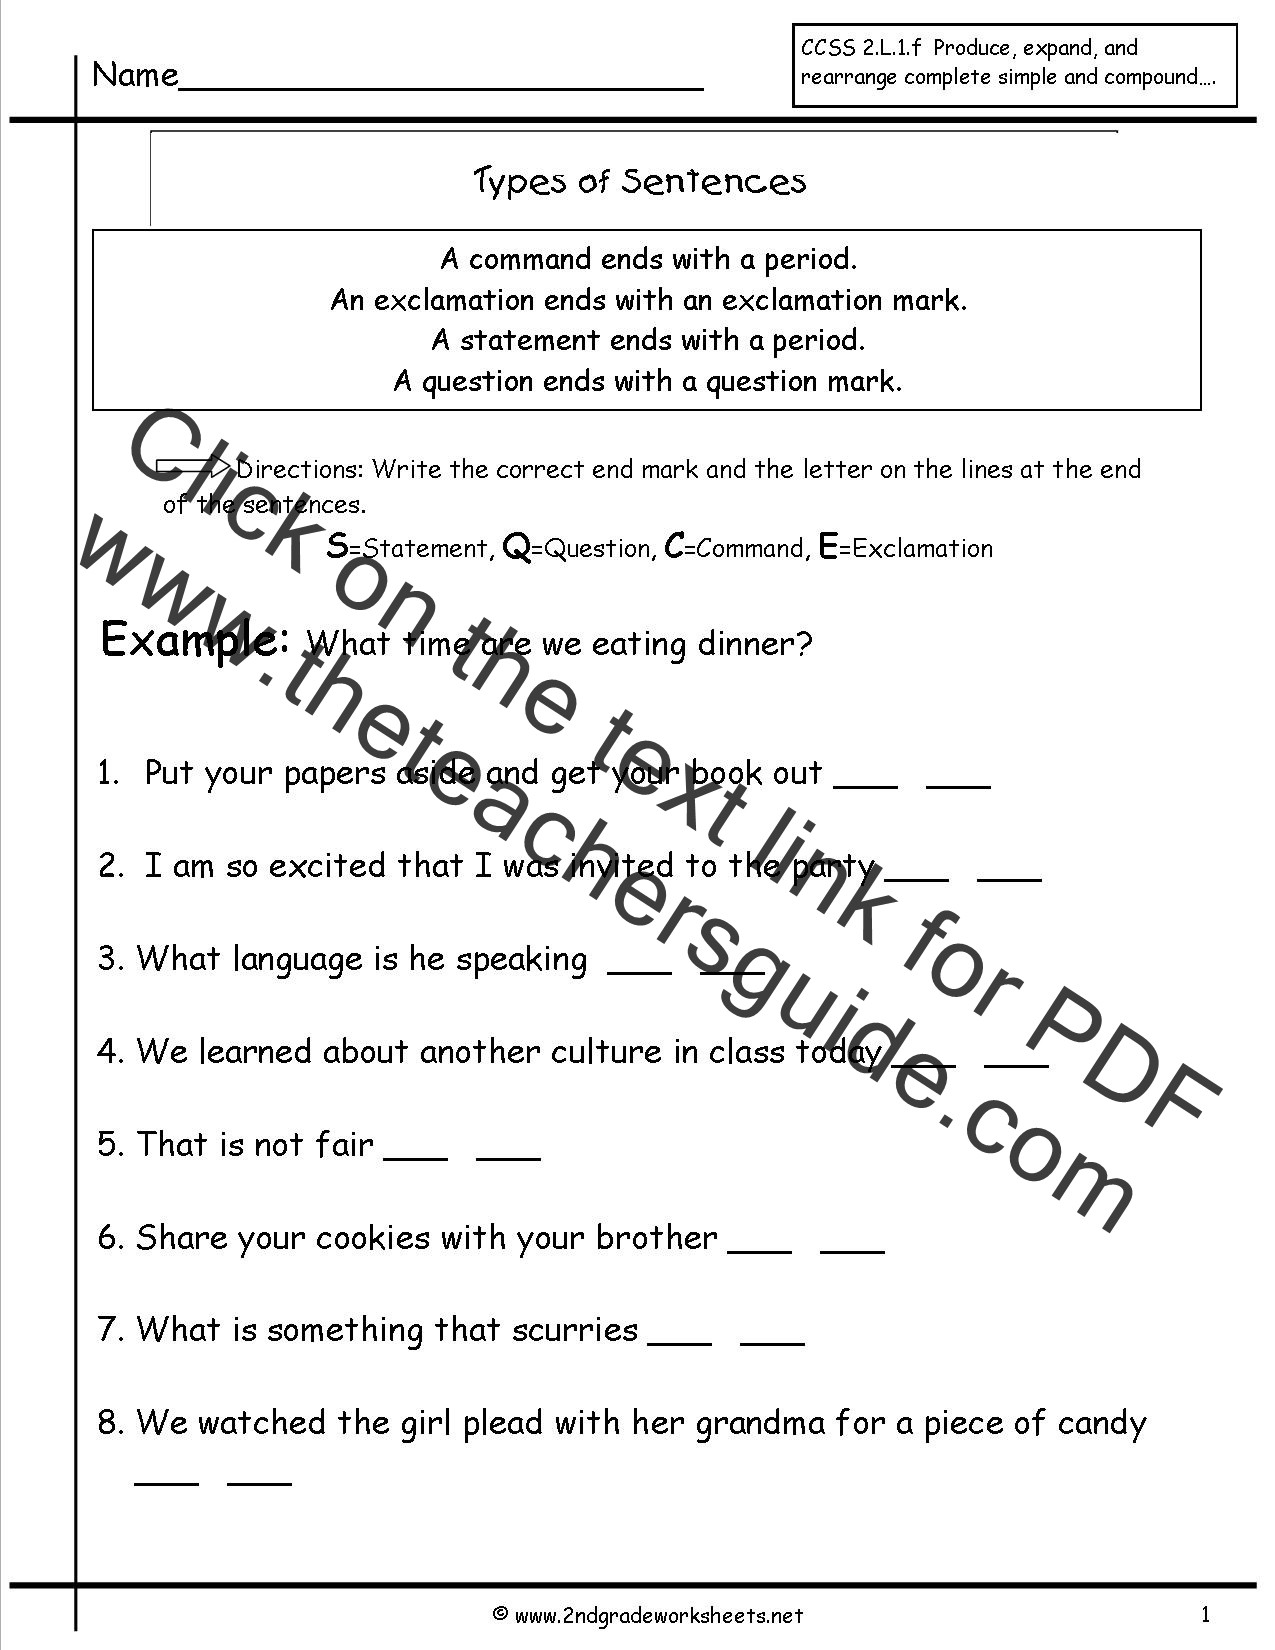 Number Sentence Worksheets 2nd Grade Kinds Sentences Worksheet for 2nd Grade